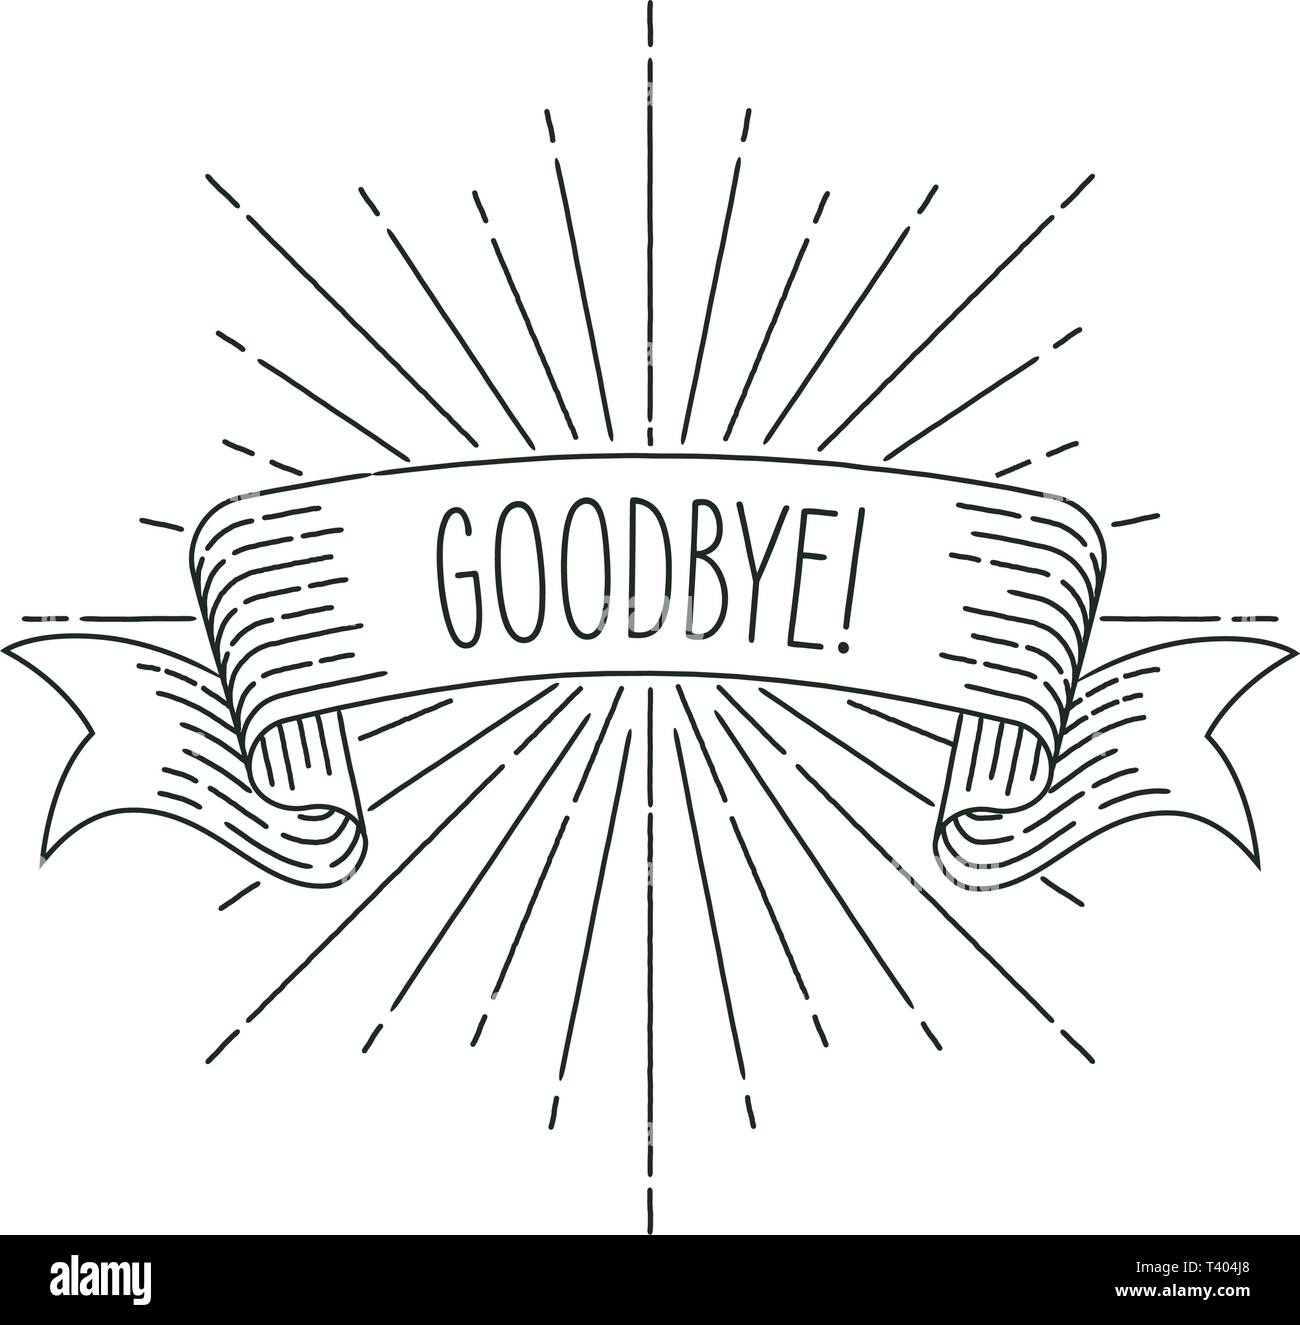 Farewell banner. Ribbon banner greeting card in vintage look with word goodbye, engraving style graphic. Retro design element. Vector Illustration. - Stock Image